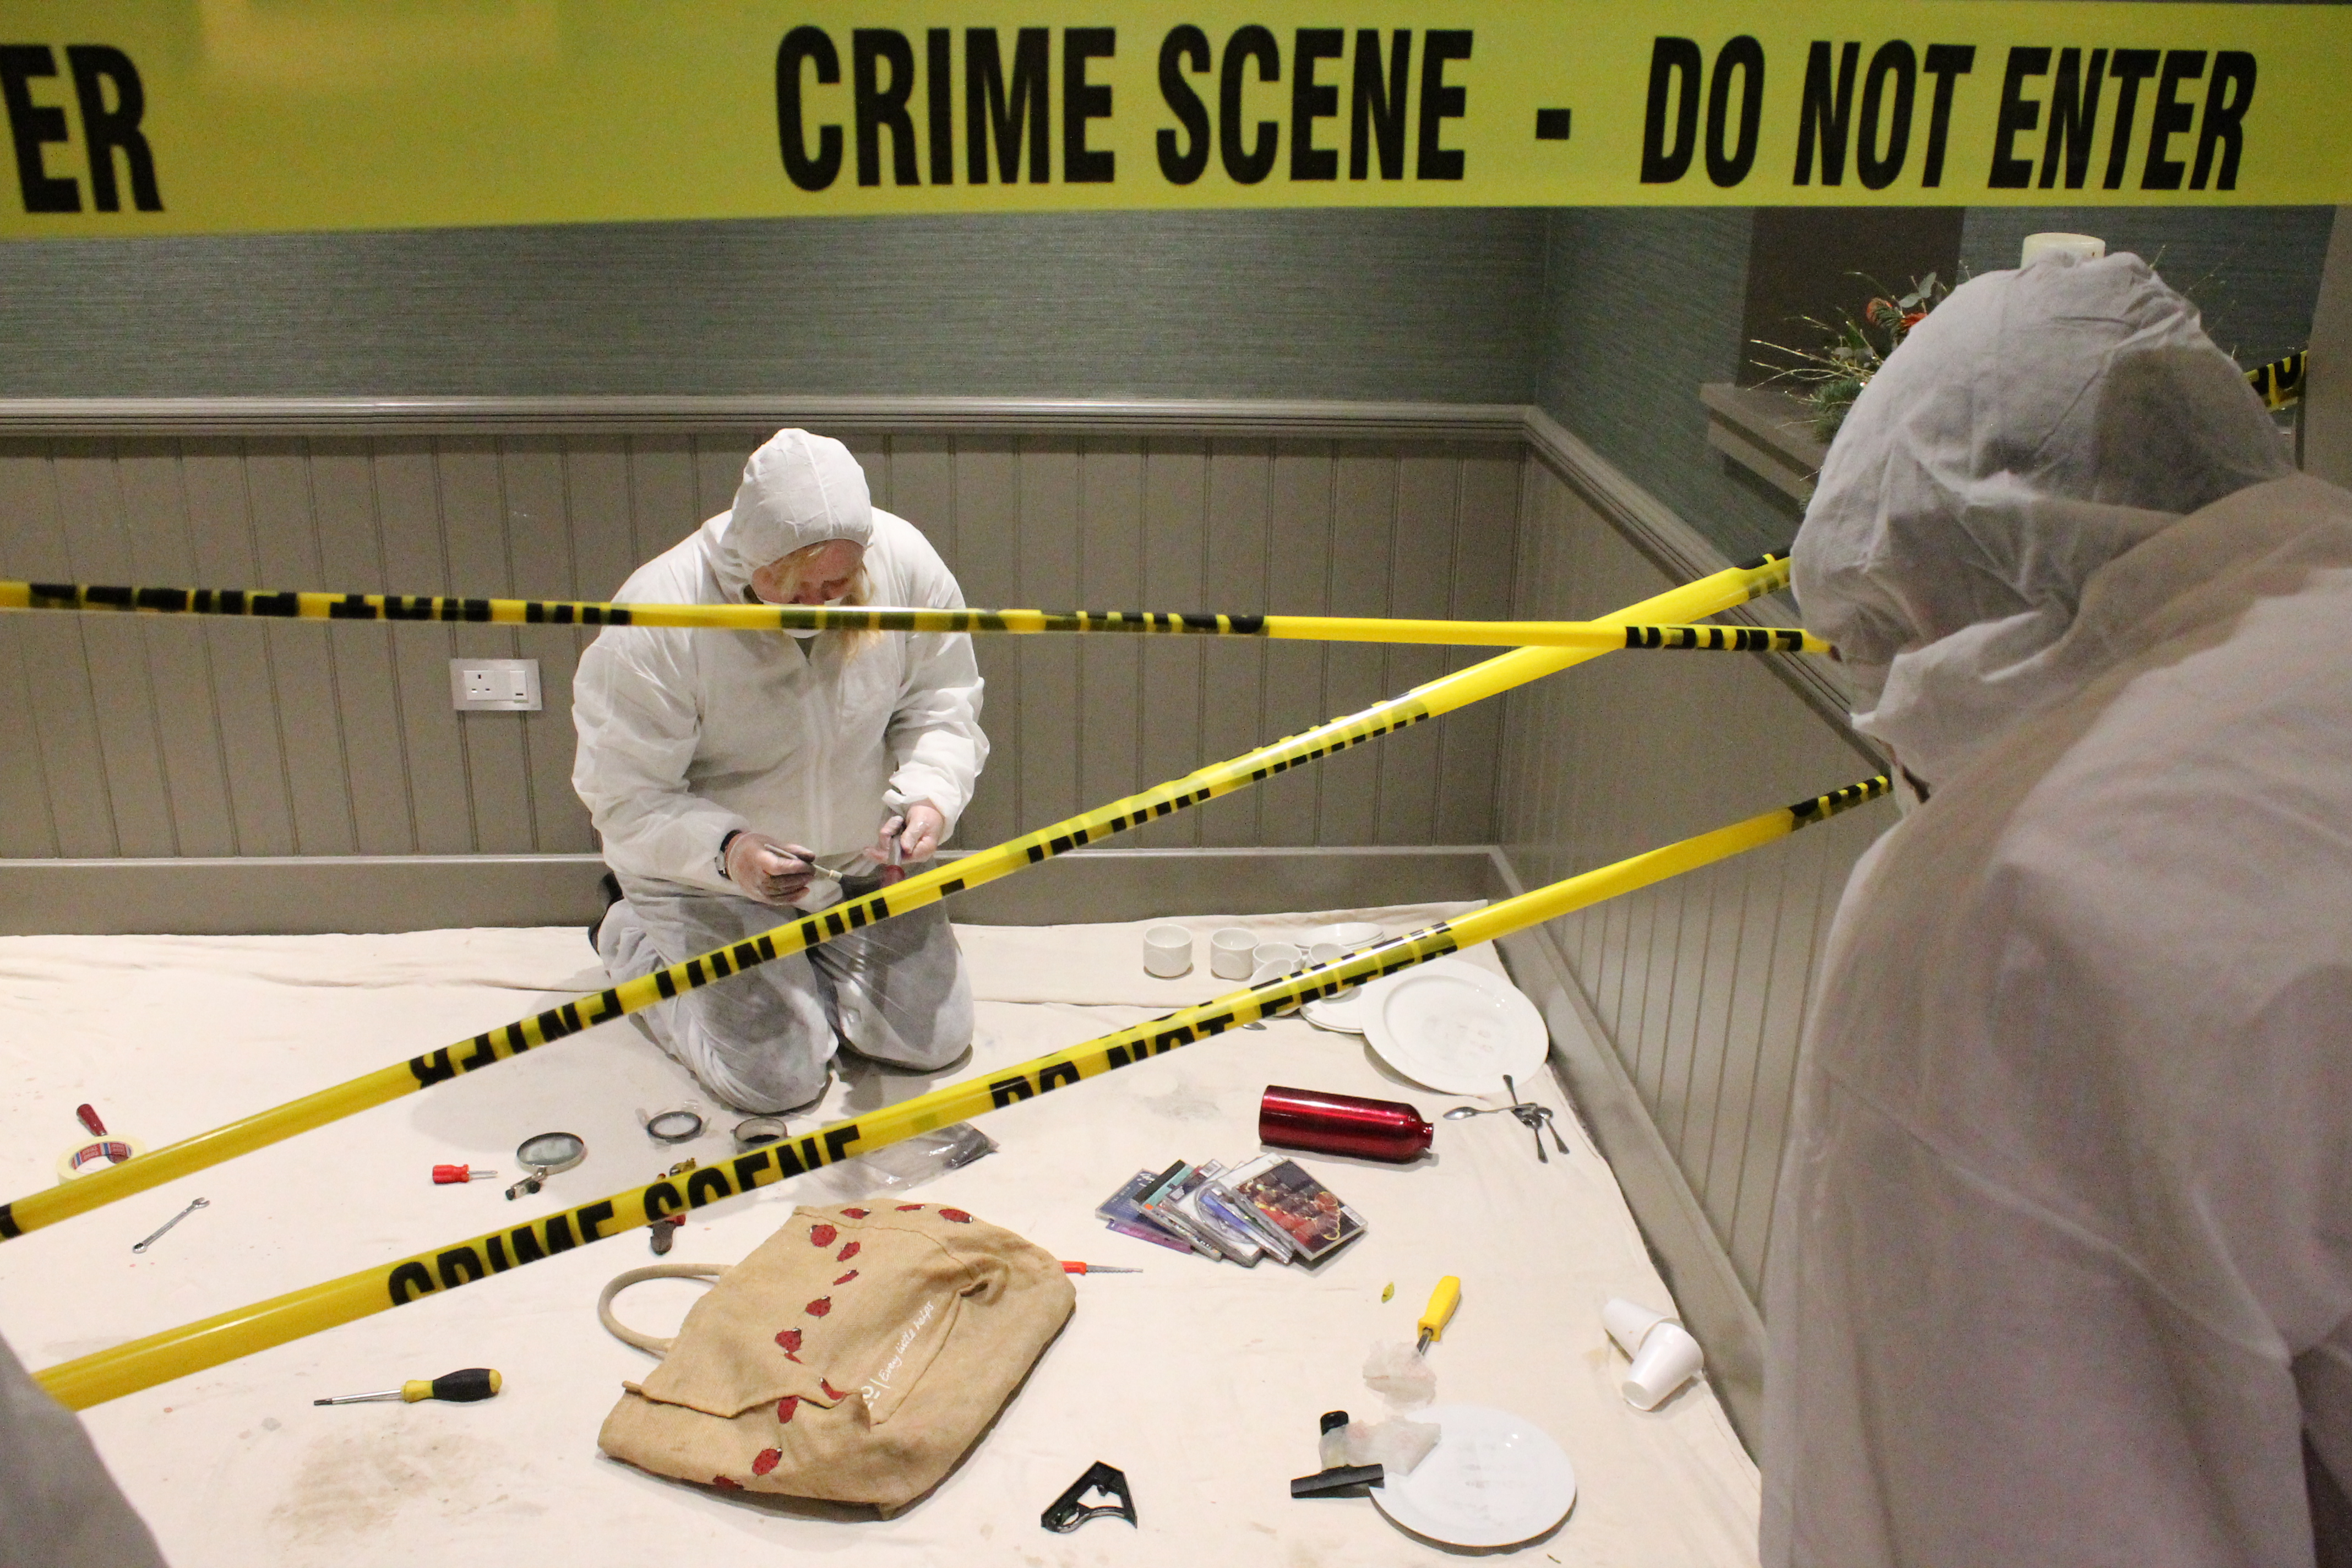 a crime scene Crime scene investigators (csis) go by many names, including evidence technician, crime scene technician, forensic investigator, crime scene analyst, criminalistics officer and more in the past, most csis were trained police officers in fact, most still work out of police stations today.